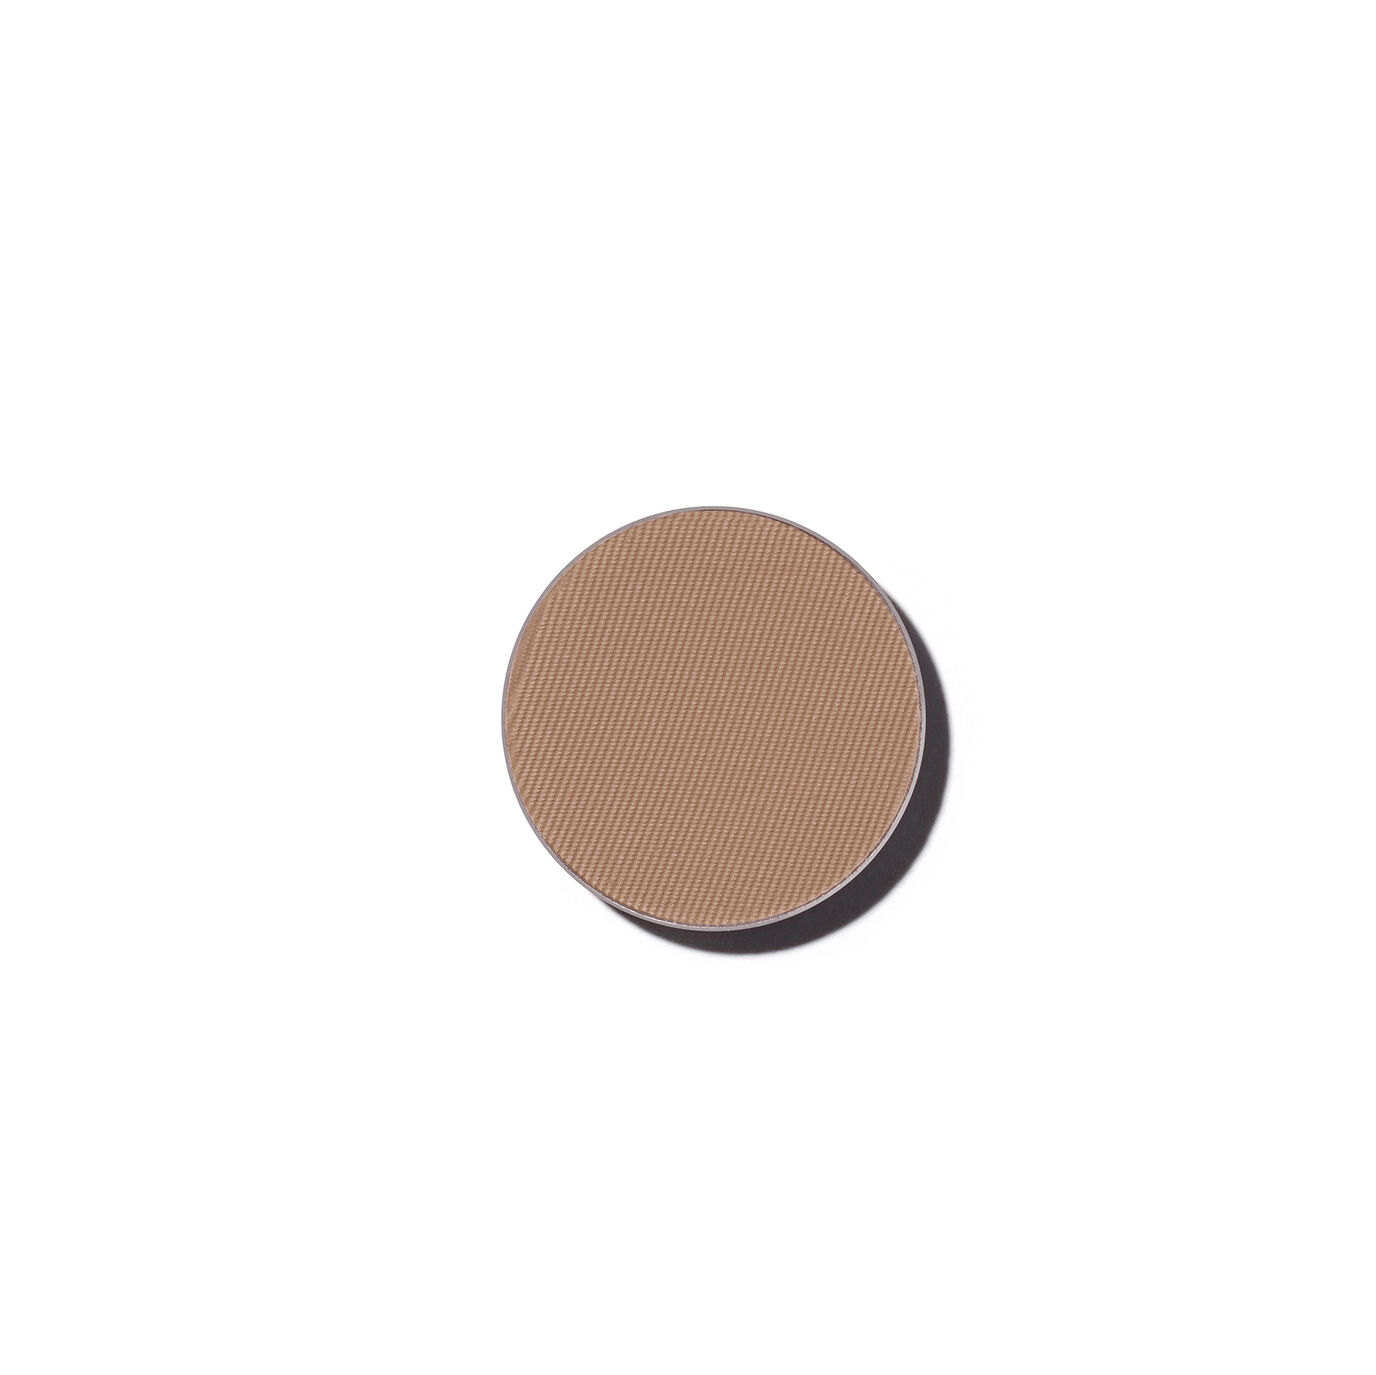 Eyeshadow Singles - Warm Taupe